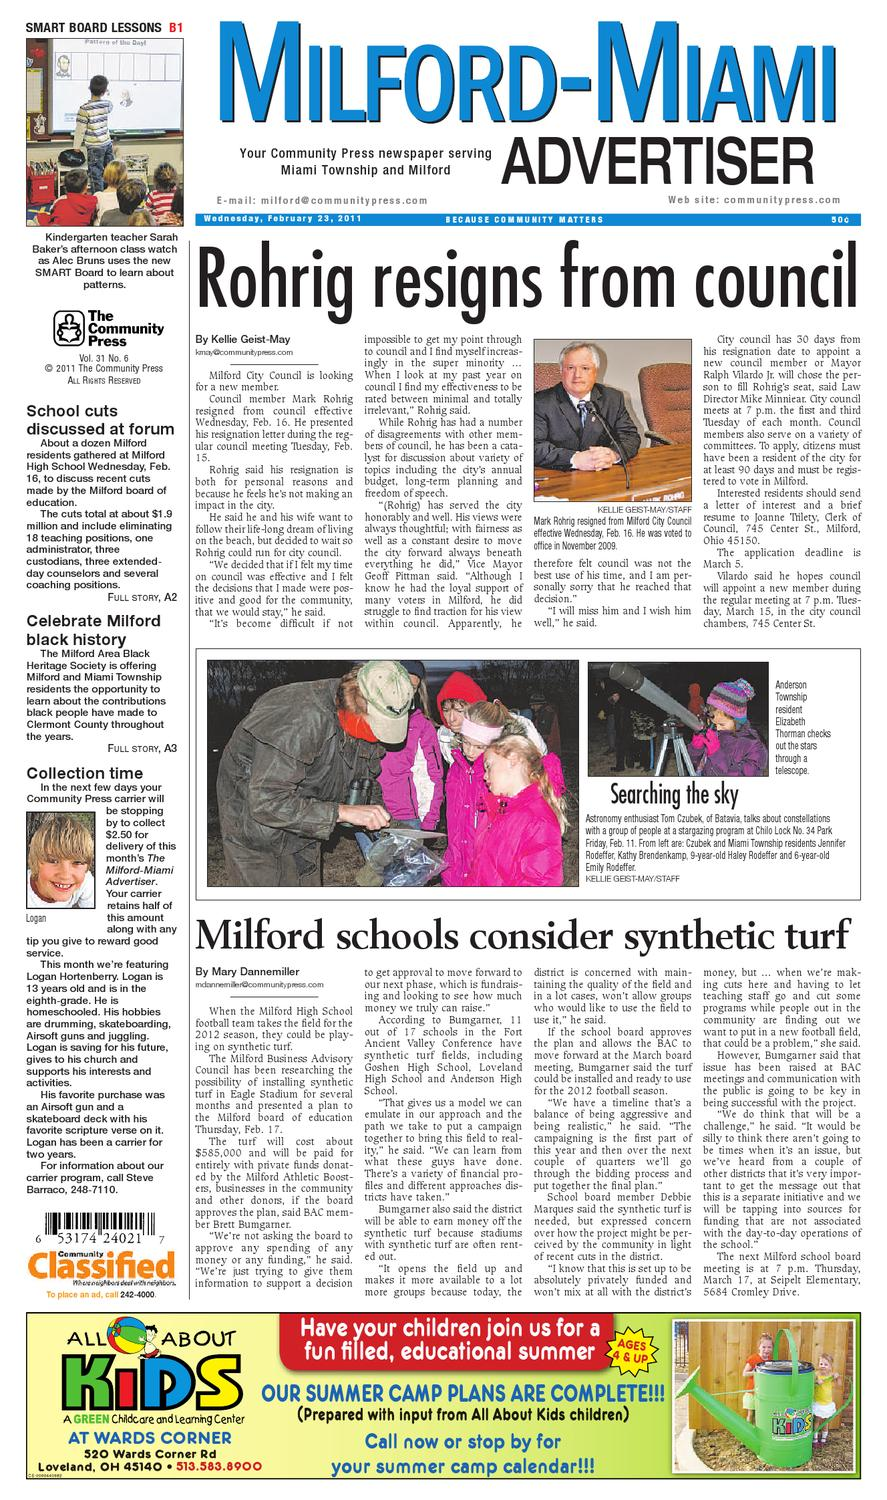 milford-miami-advertiser-022311 by Enquirer Media - issuu